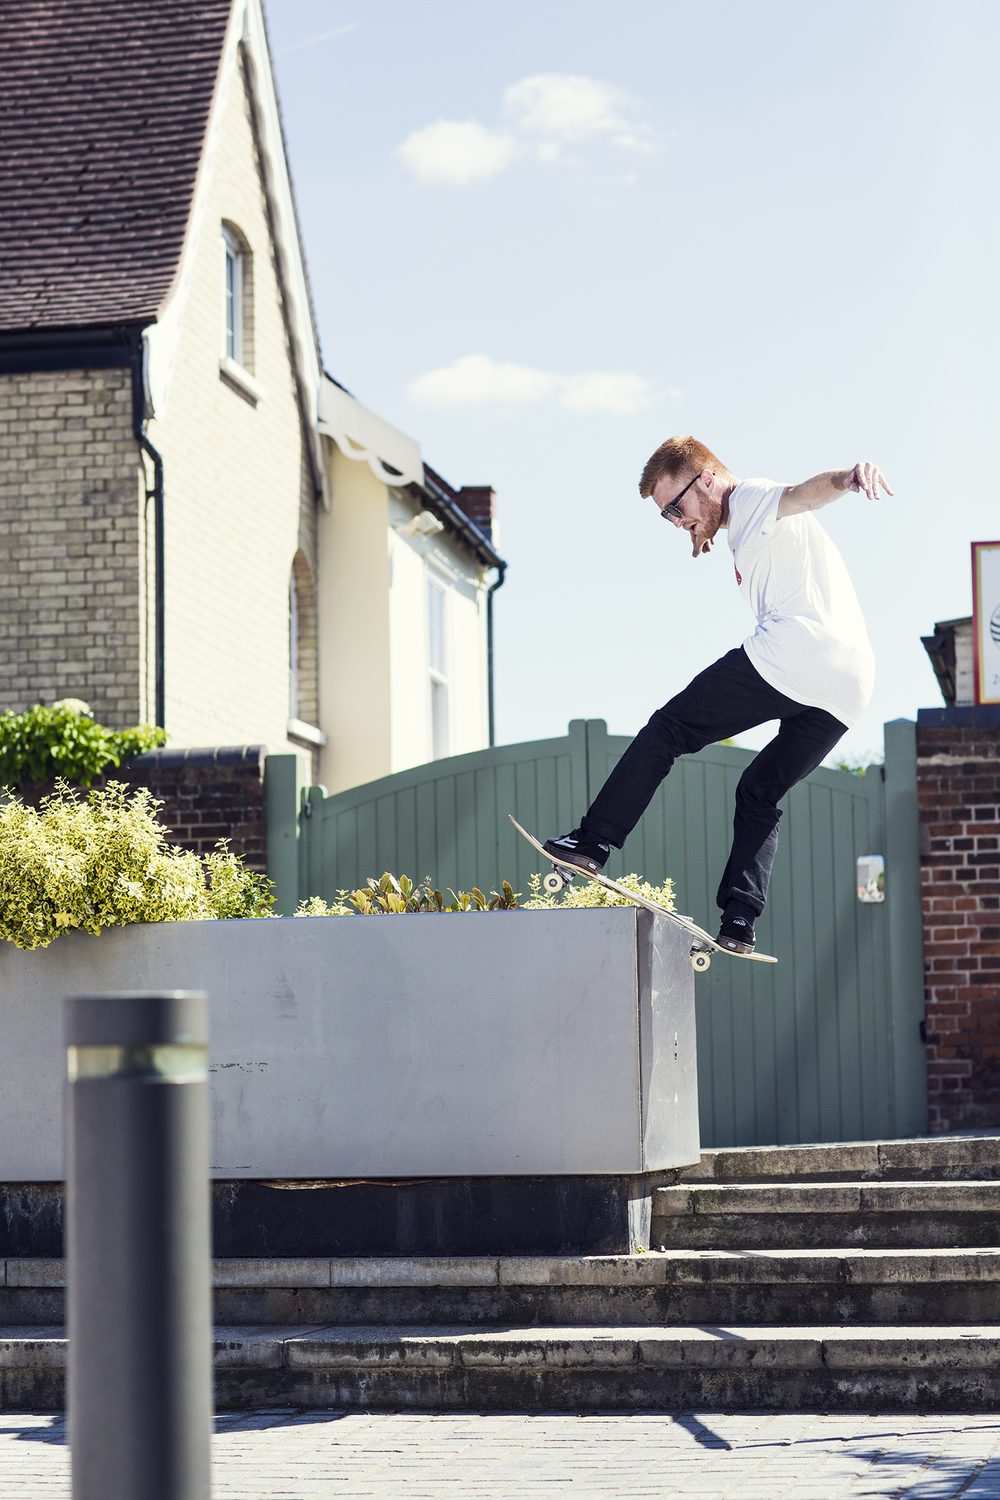 Charlie Munro | Front Board Pops